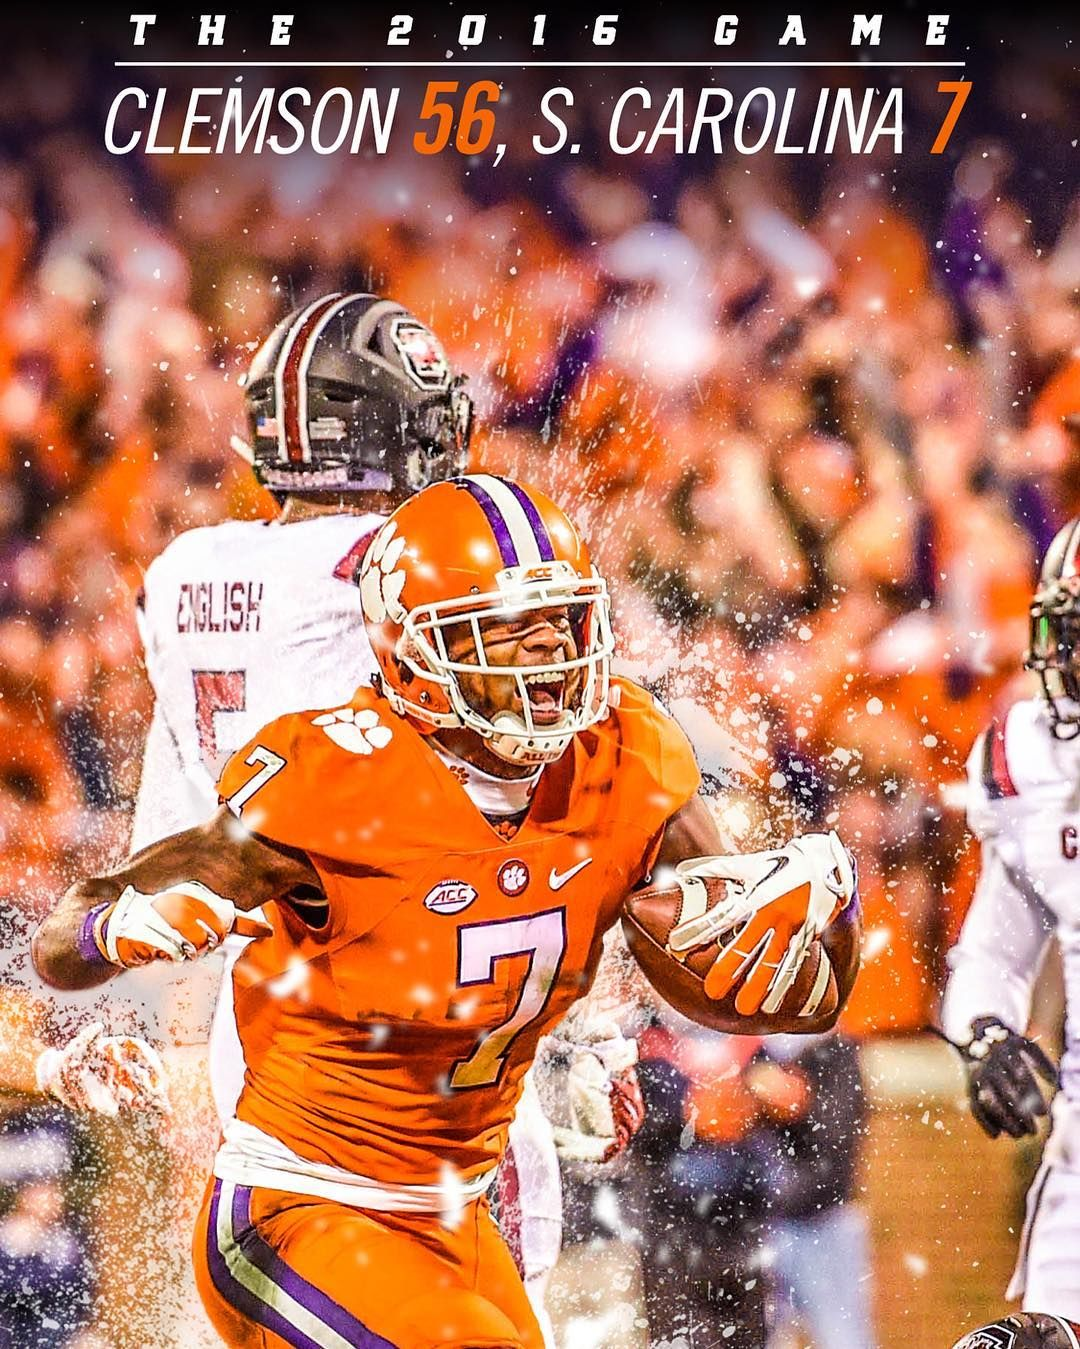 New 56 7 Phone Wallpaper Available To Screenshot In Our Ig Story Clemson Clemson Football Clemson Tigers Football